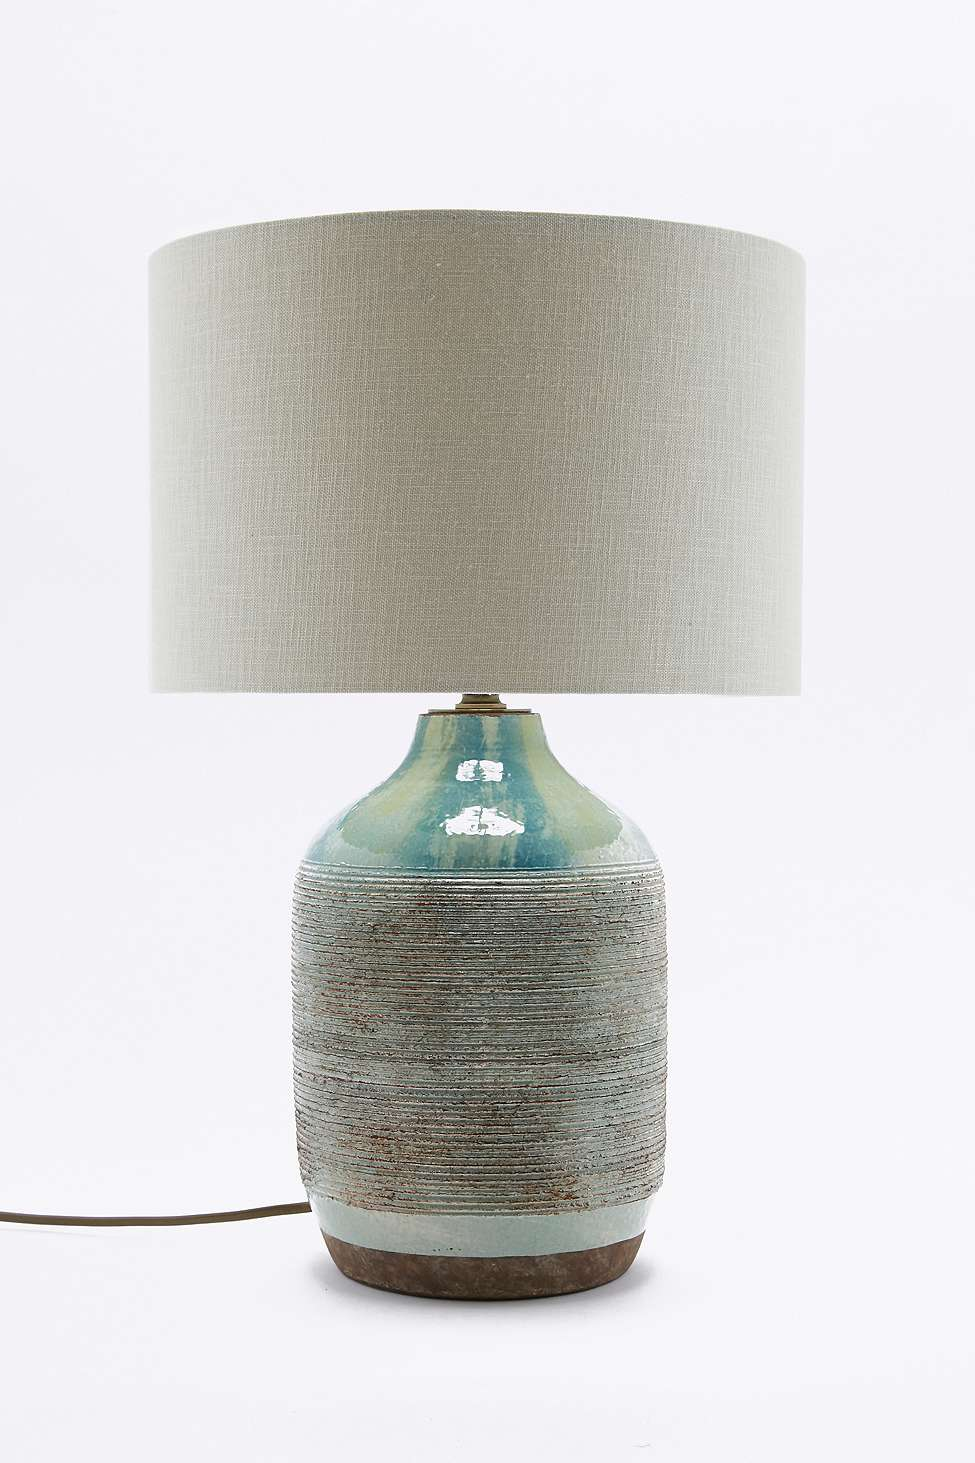 10 Beautiful Pottery Lamps • The Beat That My Heart Skipped